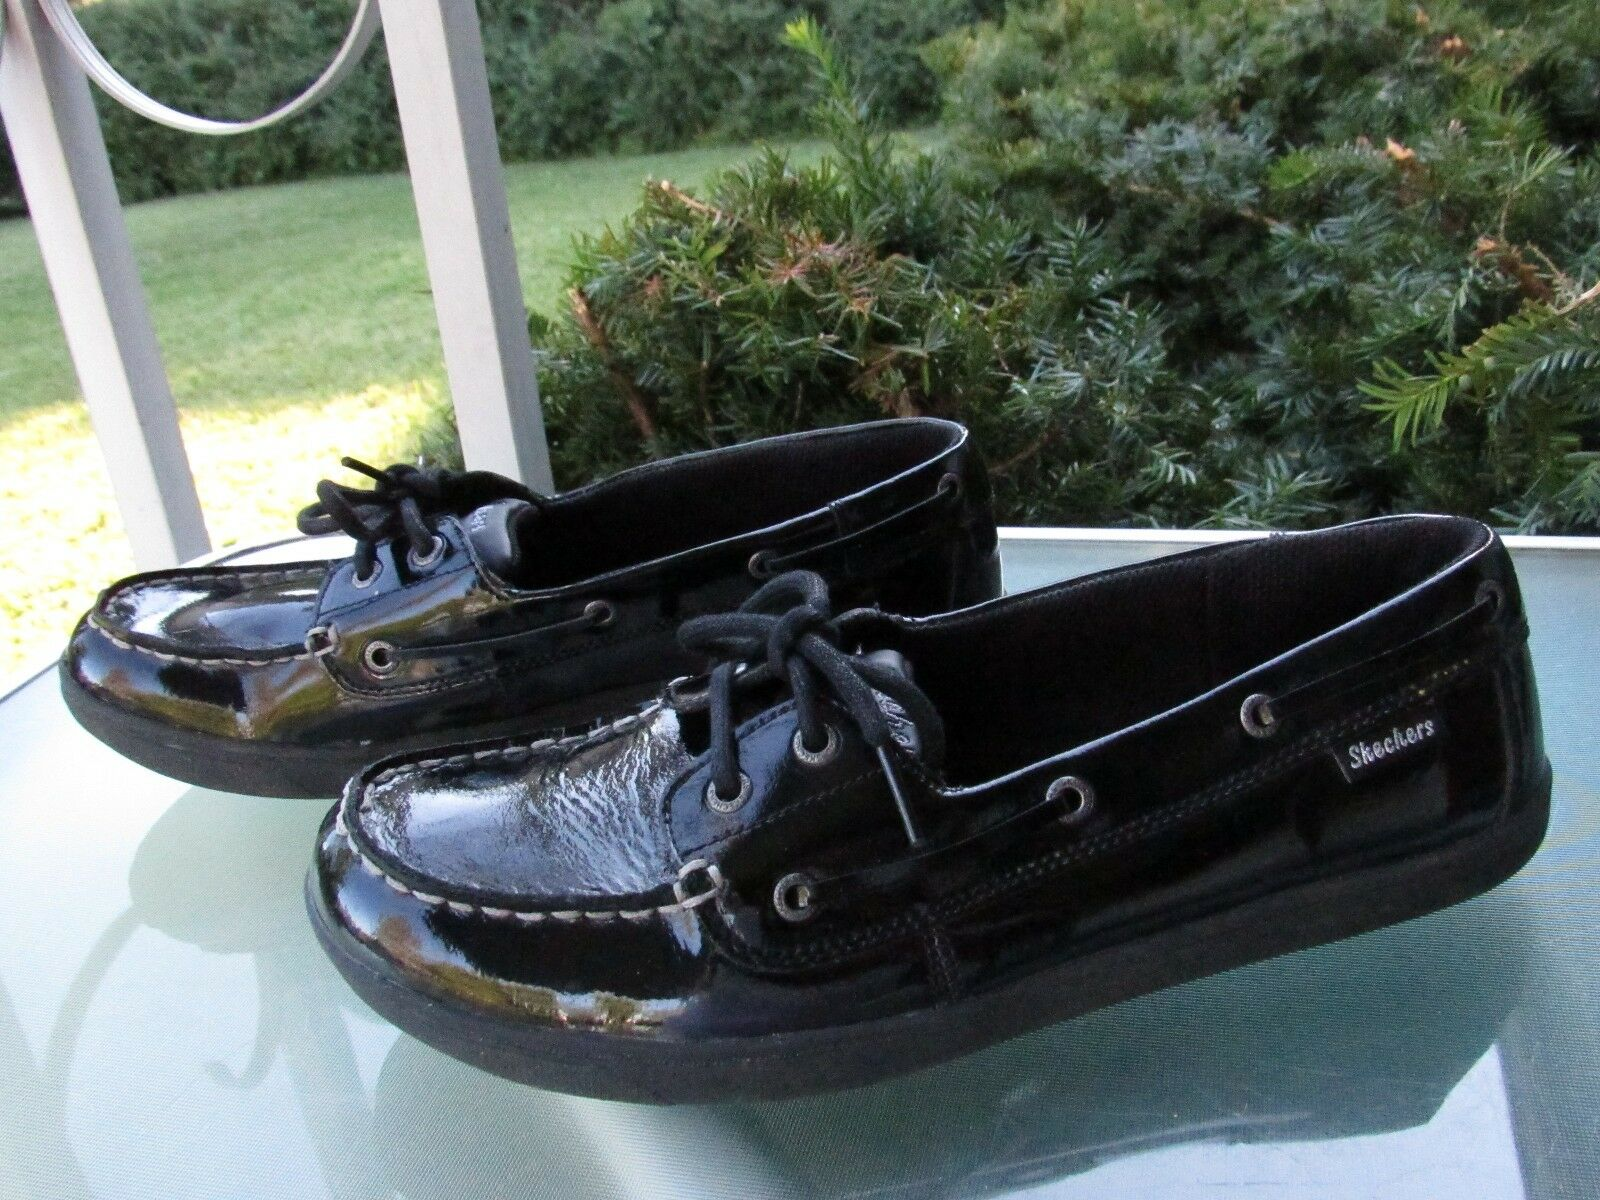 SKECHERS U.S.A Slip Womens Black Shiny Leather Slip U.S.A On Loafers Comfort Shoes, size 9 6cd170